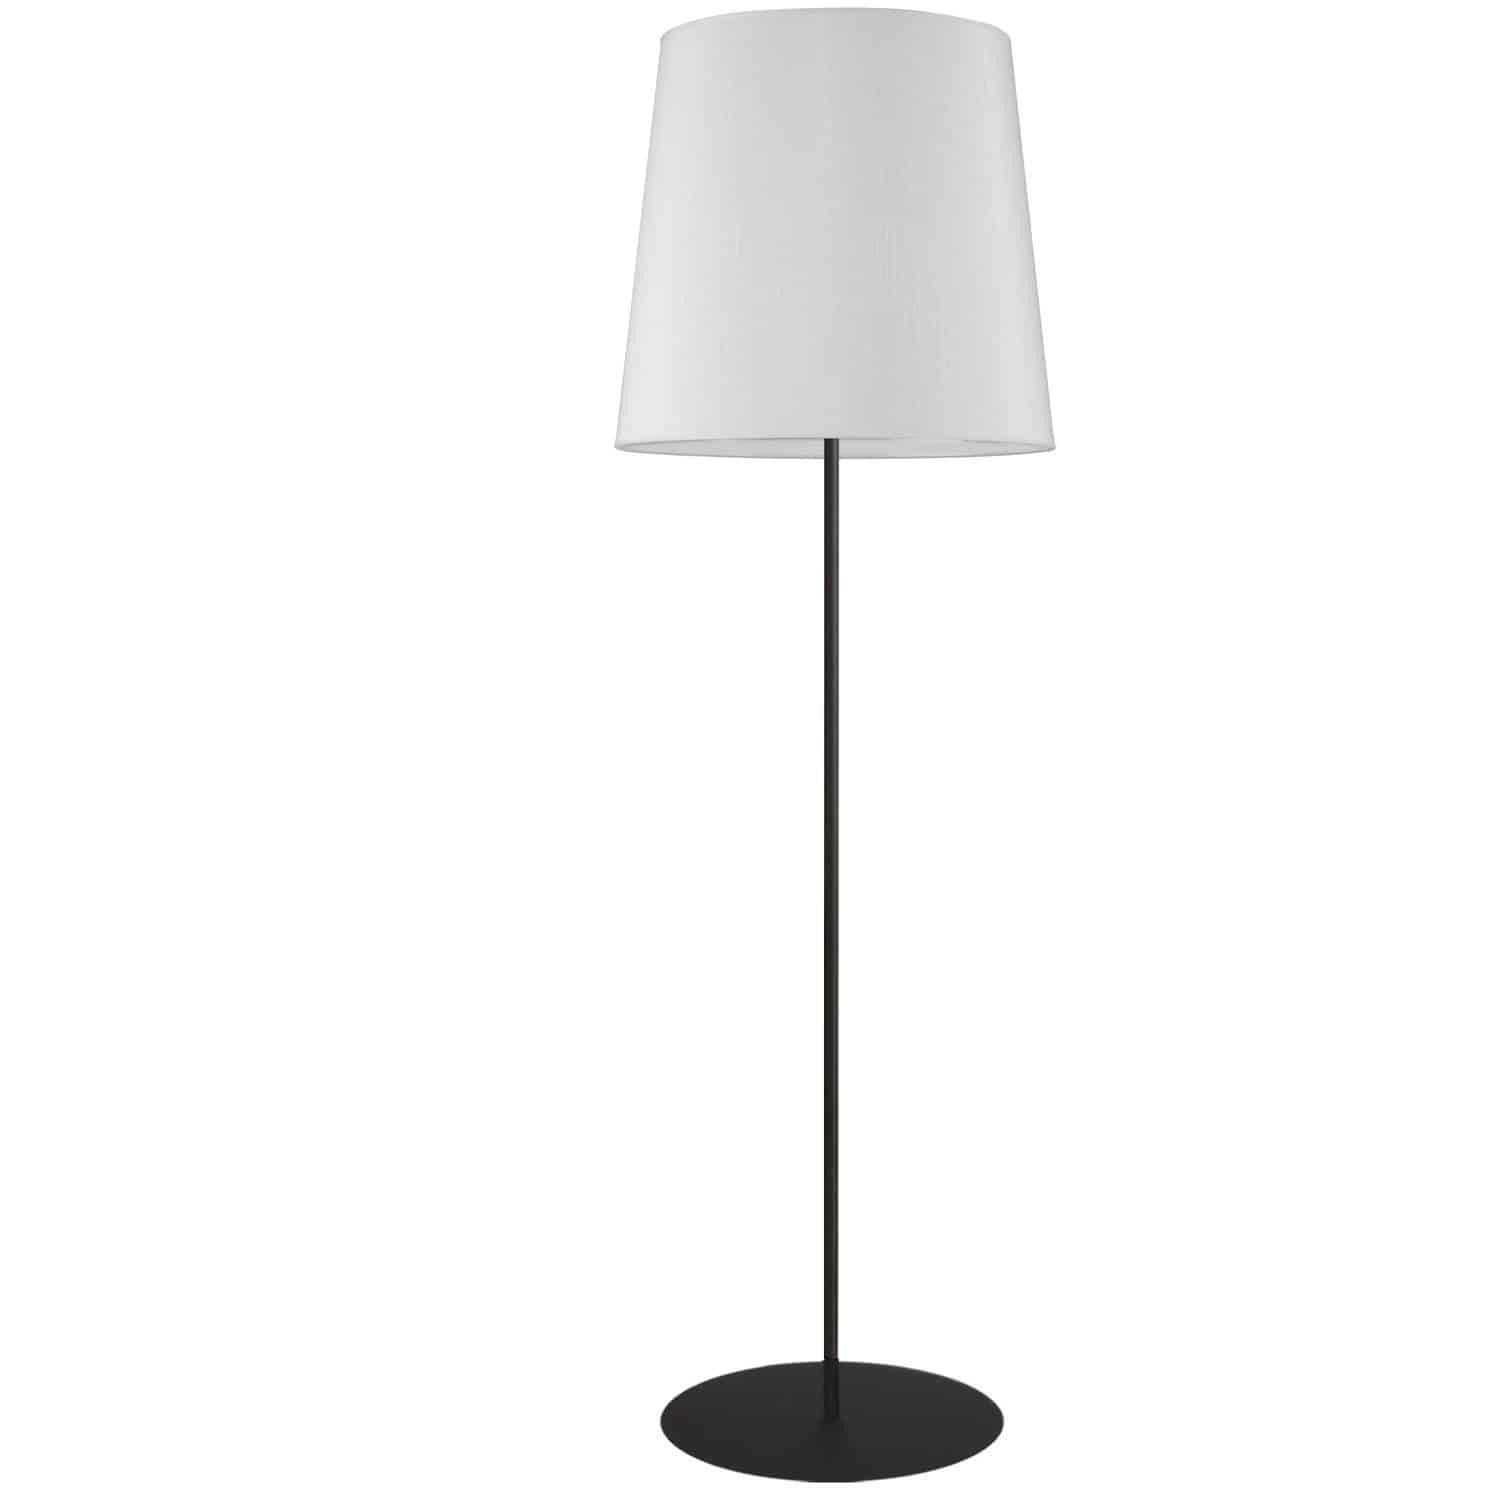 1LT Drum Floor Lamp w/ Jtone WH Shade, BK